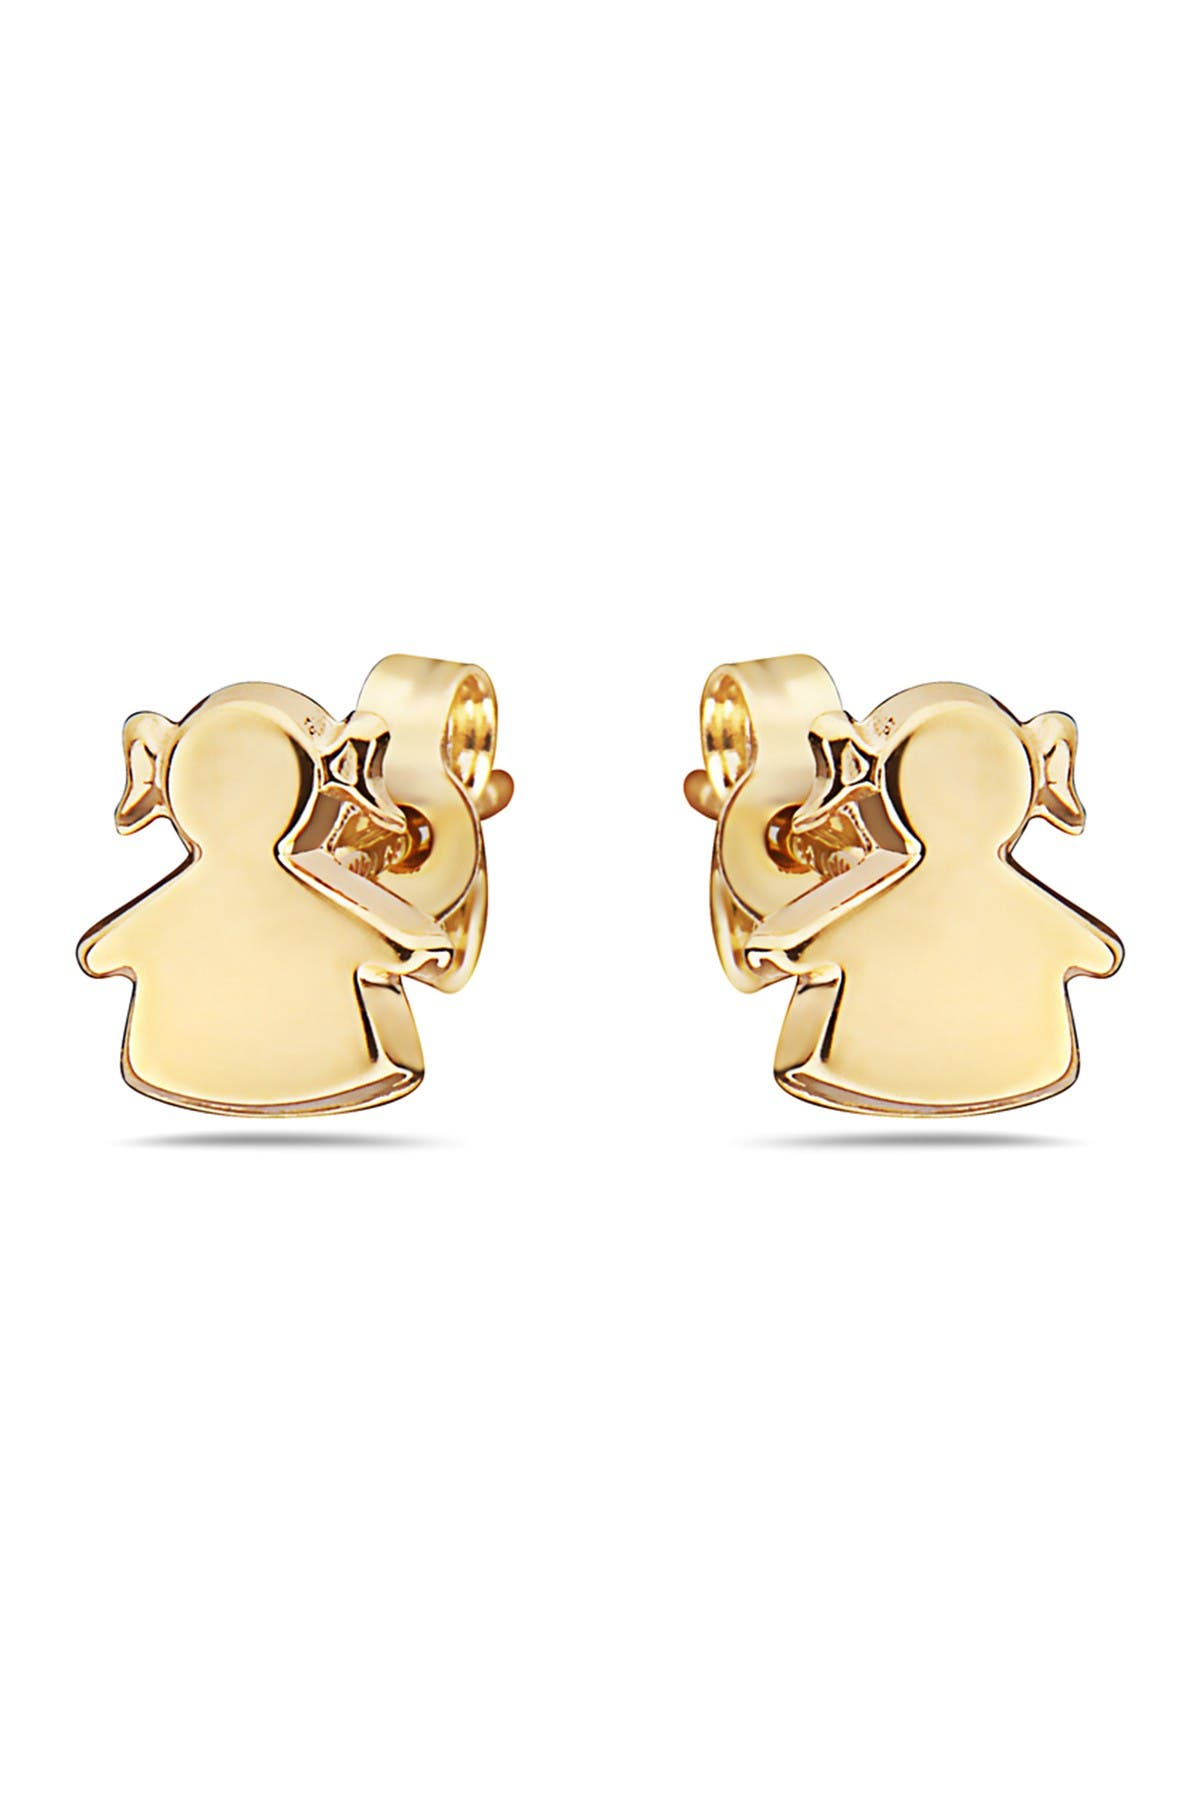 Image of Best Silver Inc. 14K Yellow Gold Girl Stud Earrings